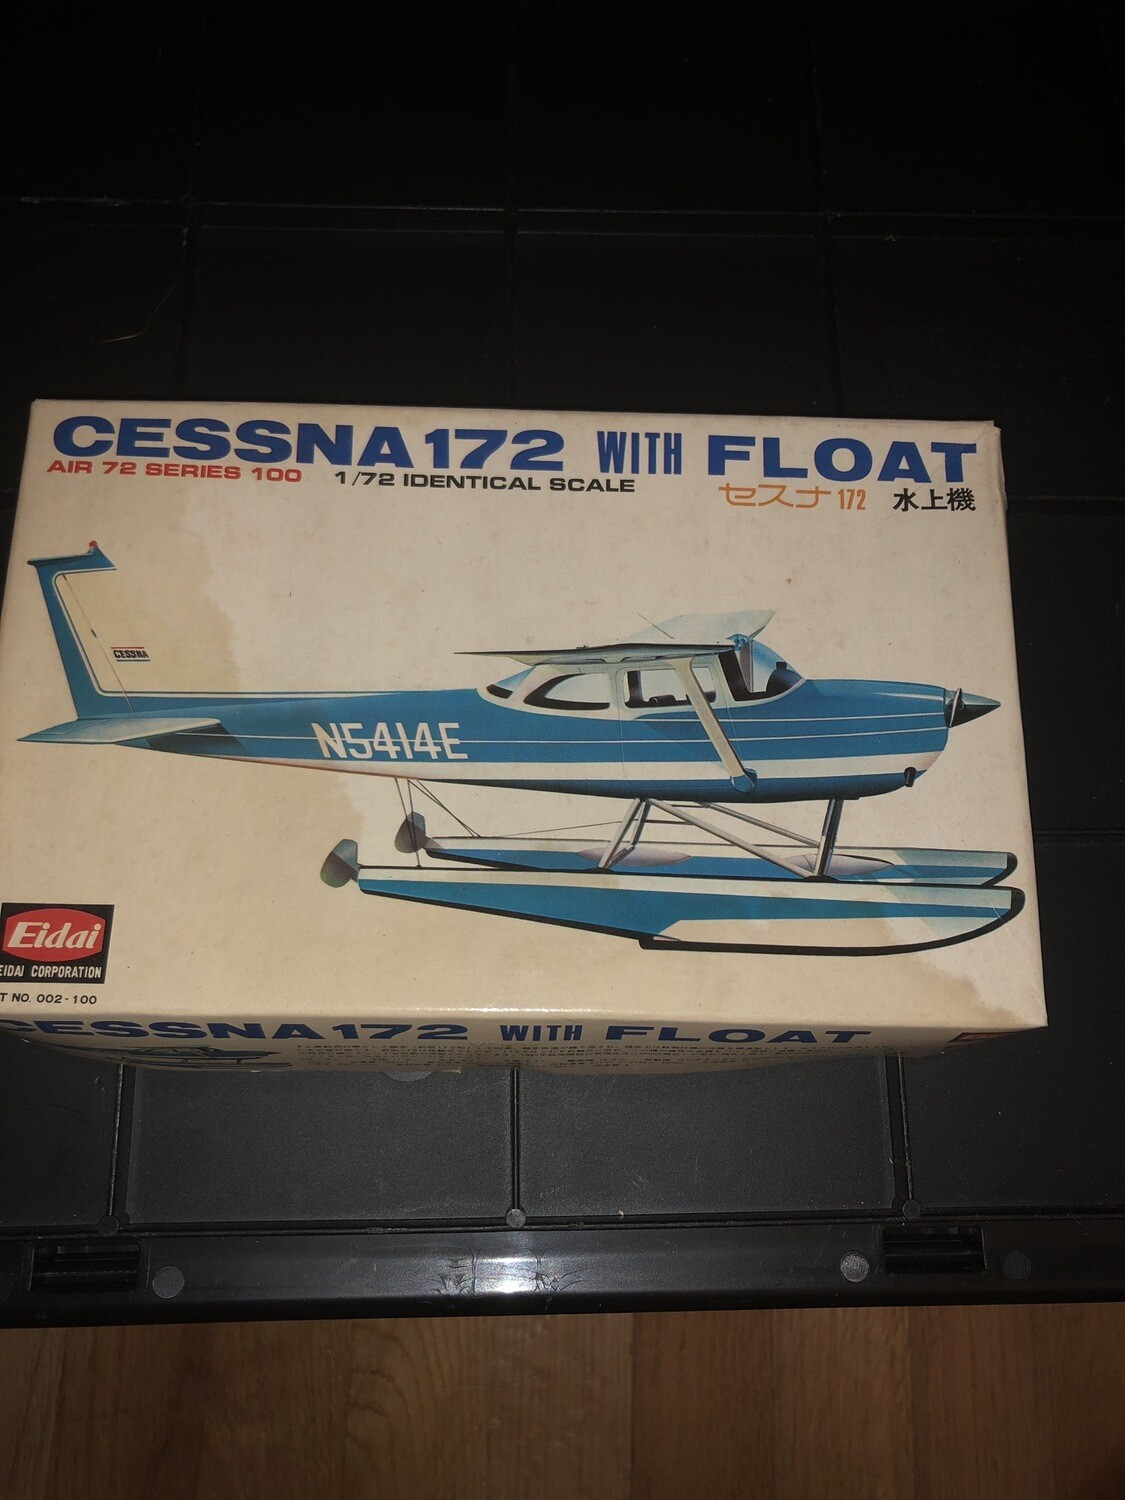 Cessana 172  With Float 1/72 identical scale Air 72 Series 100